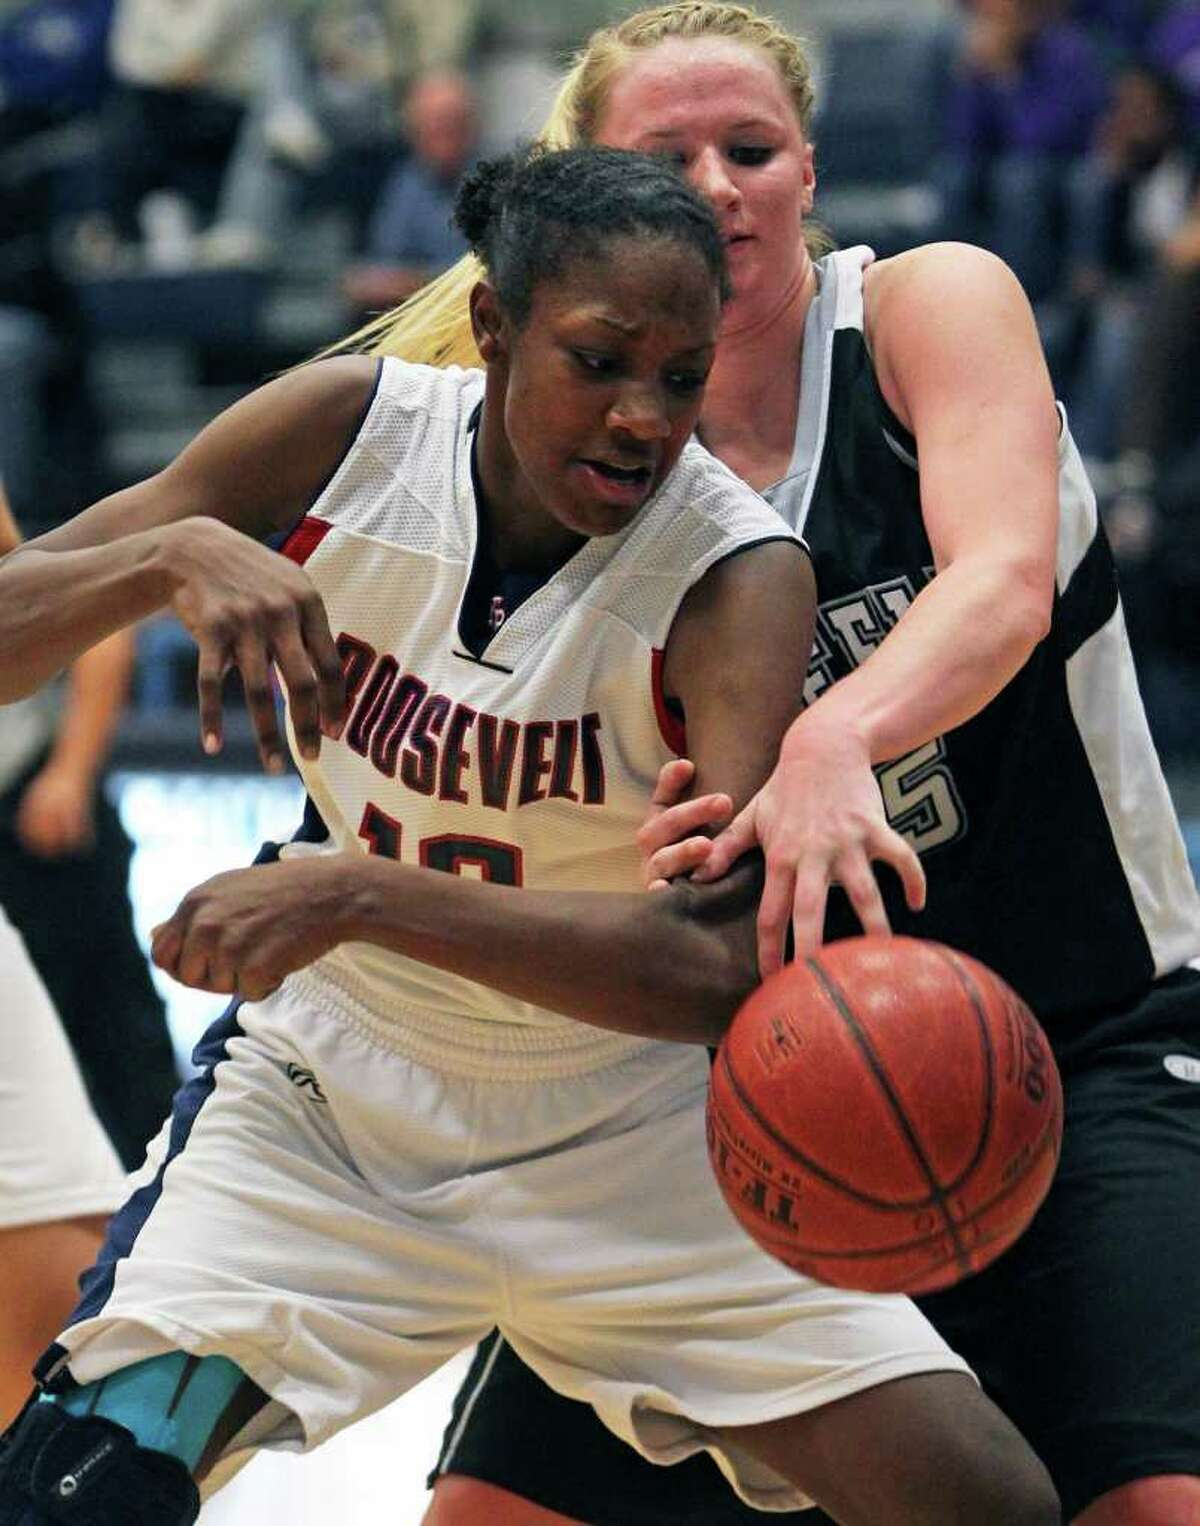 SPORTS Roosevelt's Niaga Mitchell-Cole is fouled in the lane by Rebekah Rightnour as the Steele girls play Roosevelt in 5A high school basketball playoff action at South San gym on February 15, 2011. Tom Reel/Staff